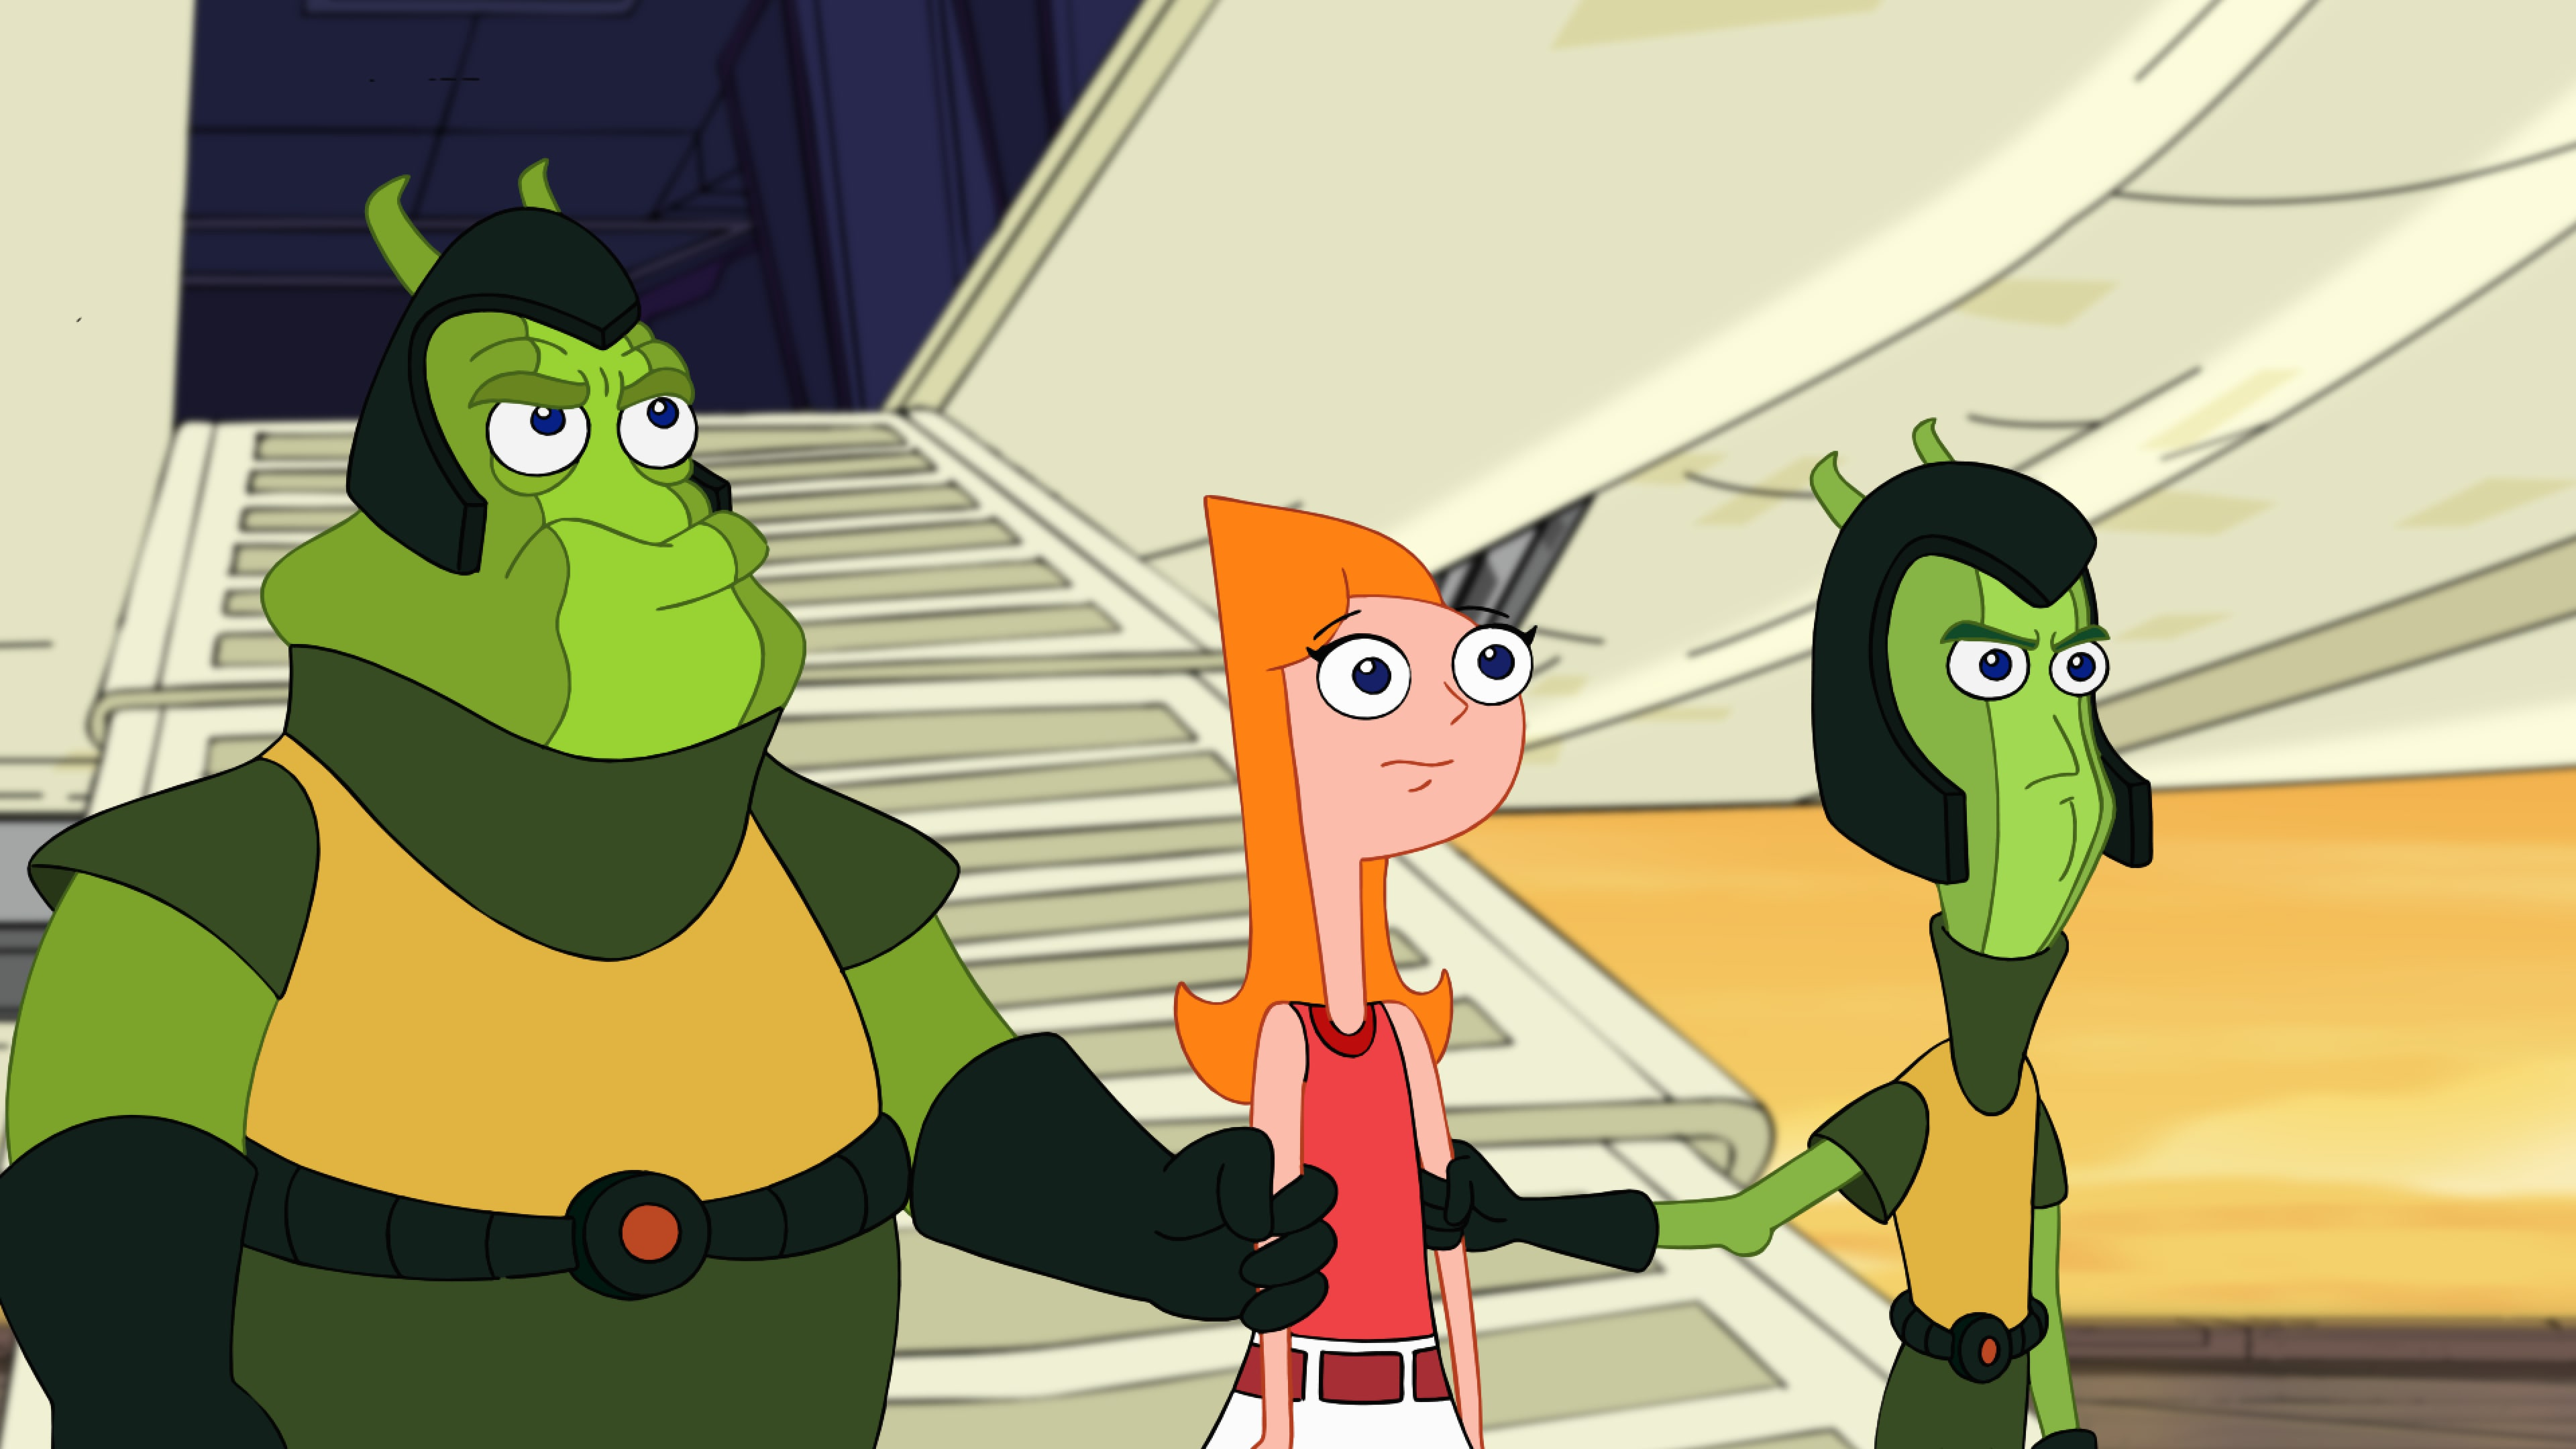 """PHINEAS AND FERB THE MOVIE: CANDACE AGAINST THE UNIVERSE - Executive-produced by the creators/executive producers of the Emmy Award-winning """"Phineas and Ferb"""" series, Dan Povenmire and Jeff """"Swampy"""" Marsh, """"Phineas and Ferb The Movie: Candace Against the Universe"""" is an adventure story that tracks stepbrothers Phineas and Ferb as they set out across the galaxy to rescue their older sister Candace, who after being abducted by aliens, finds utopia in a far-off planet, free of pesky little brothers. (Disney+)"""